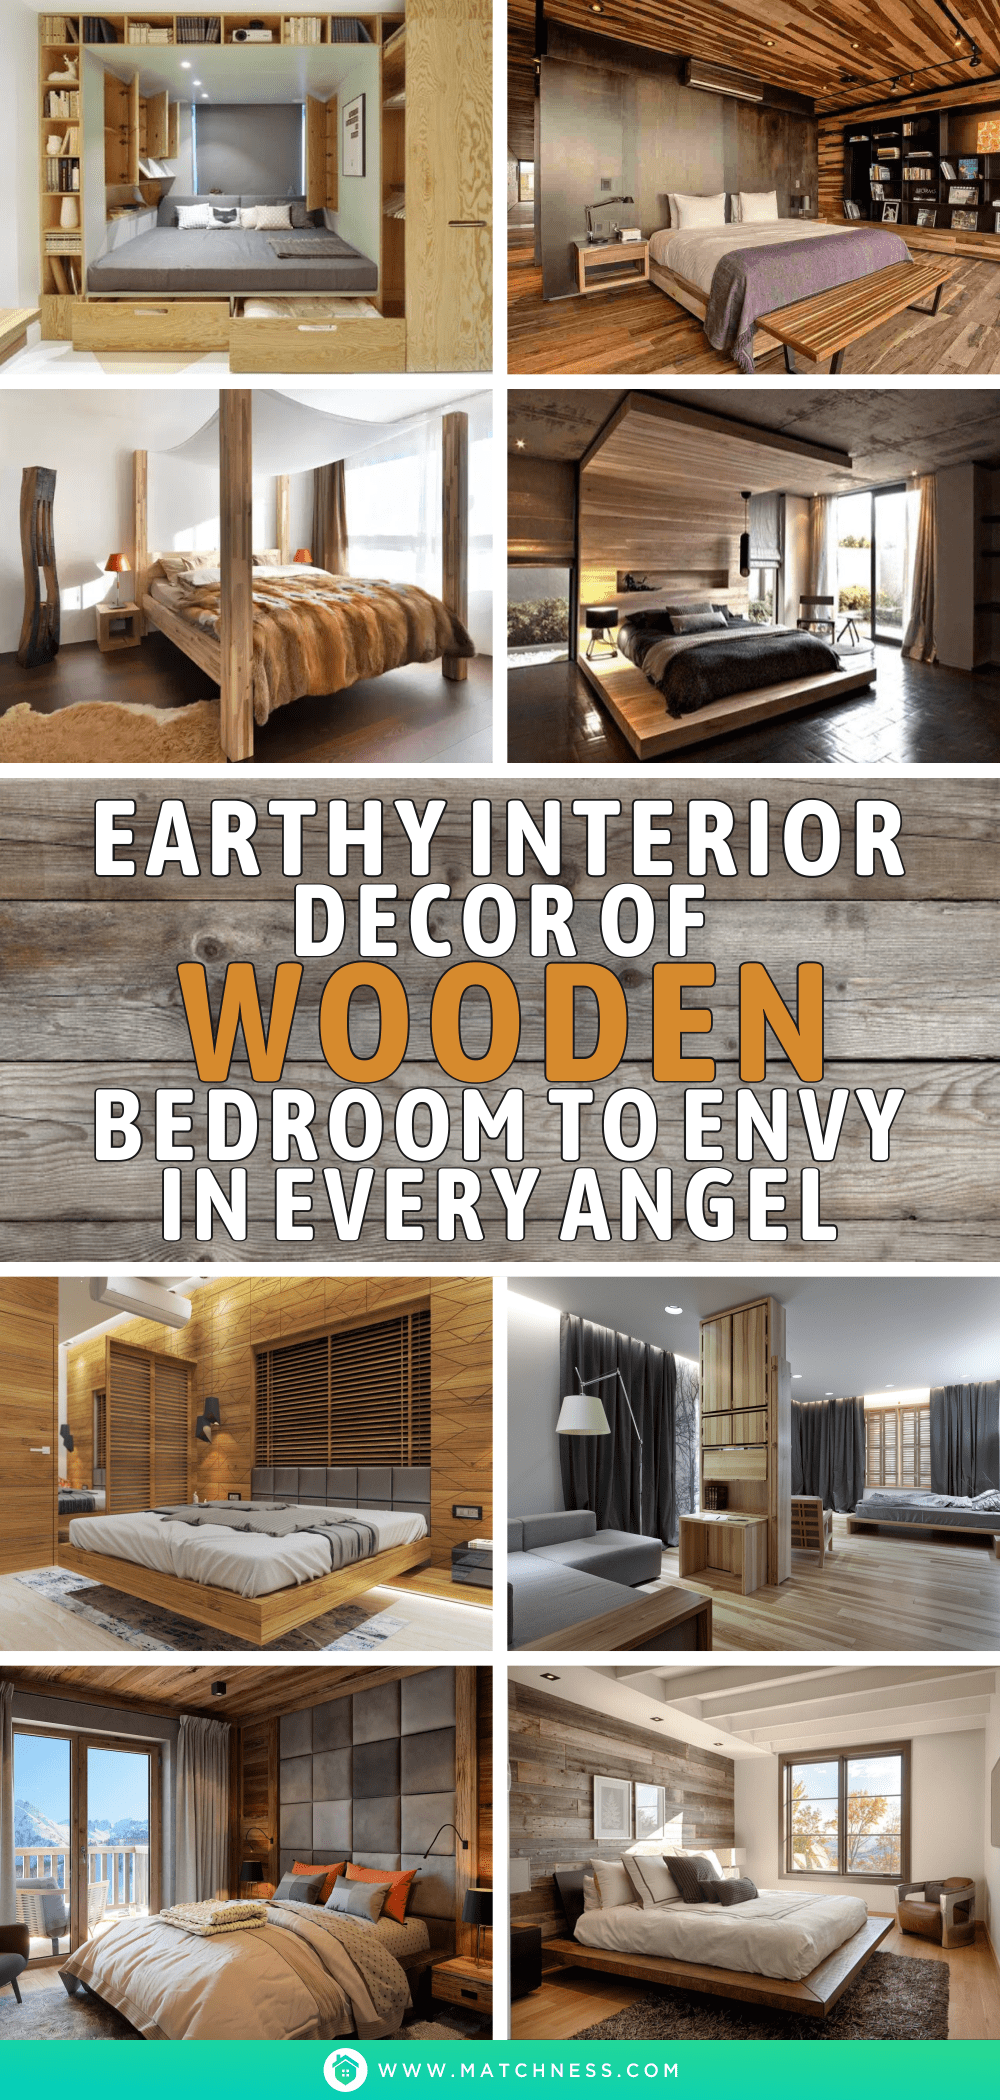 Earthy-interior-decor-of-wooden-bedroom-to-envy-in-every-angel-1